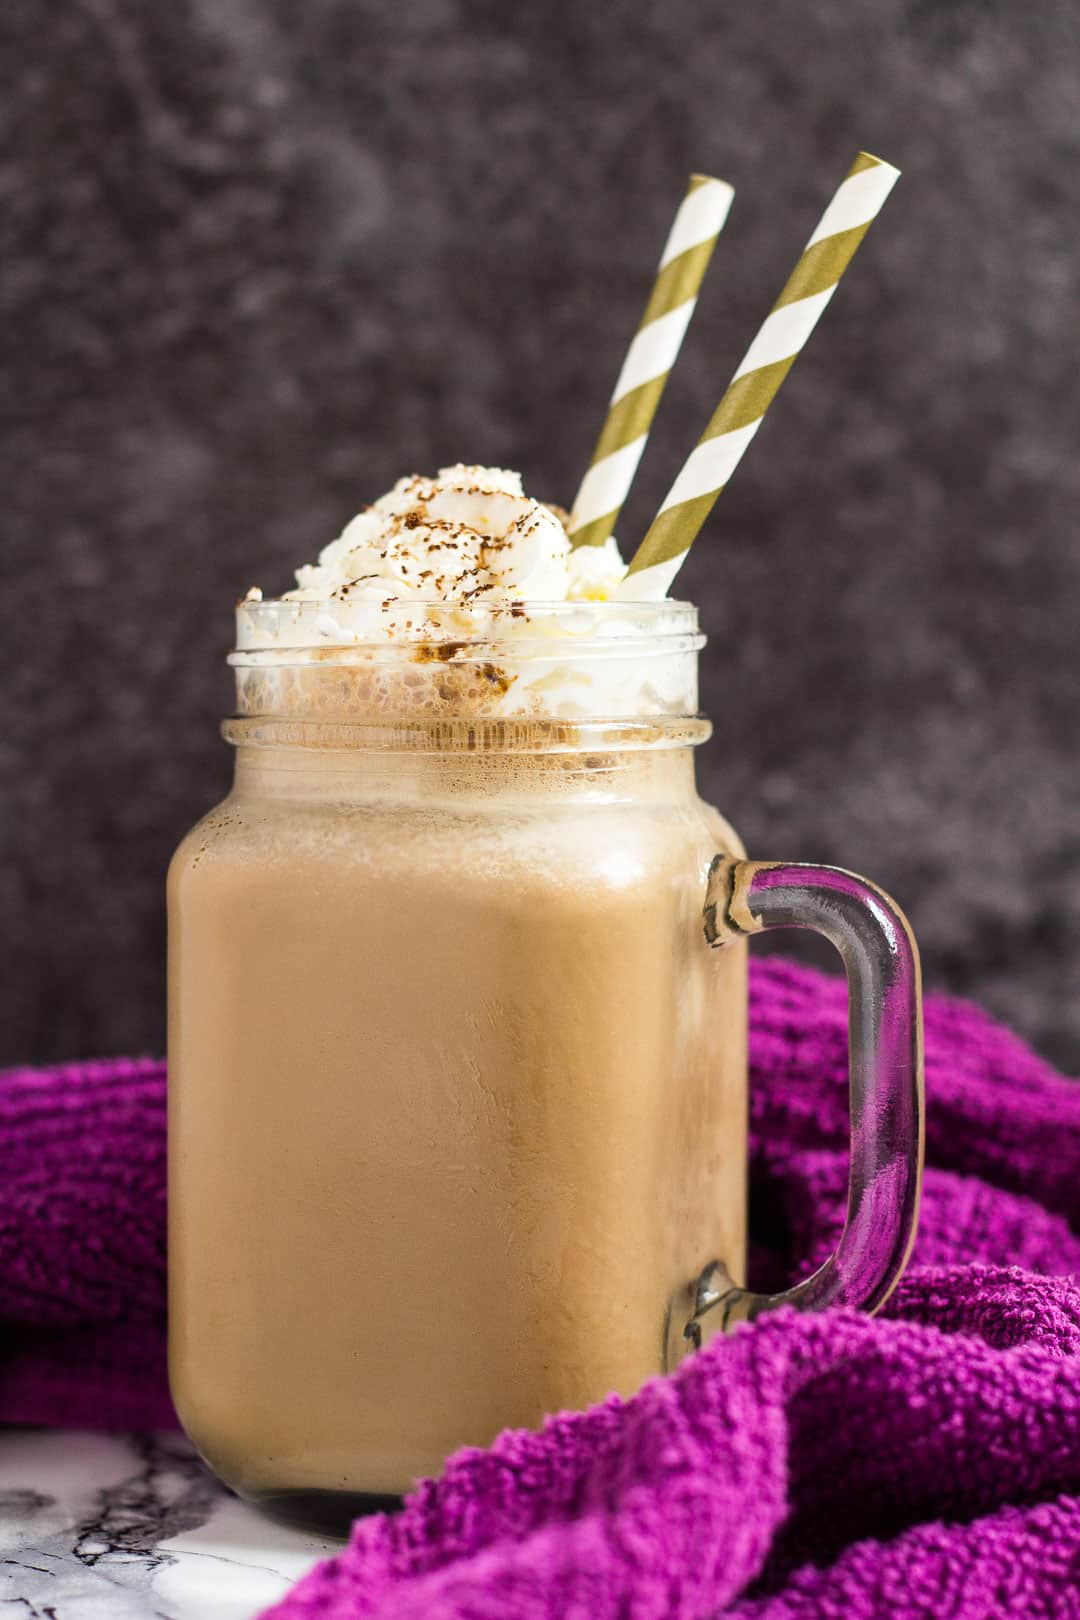 A mason jar filled with banana coffee milkshake with whipped cream on top.